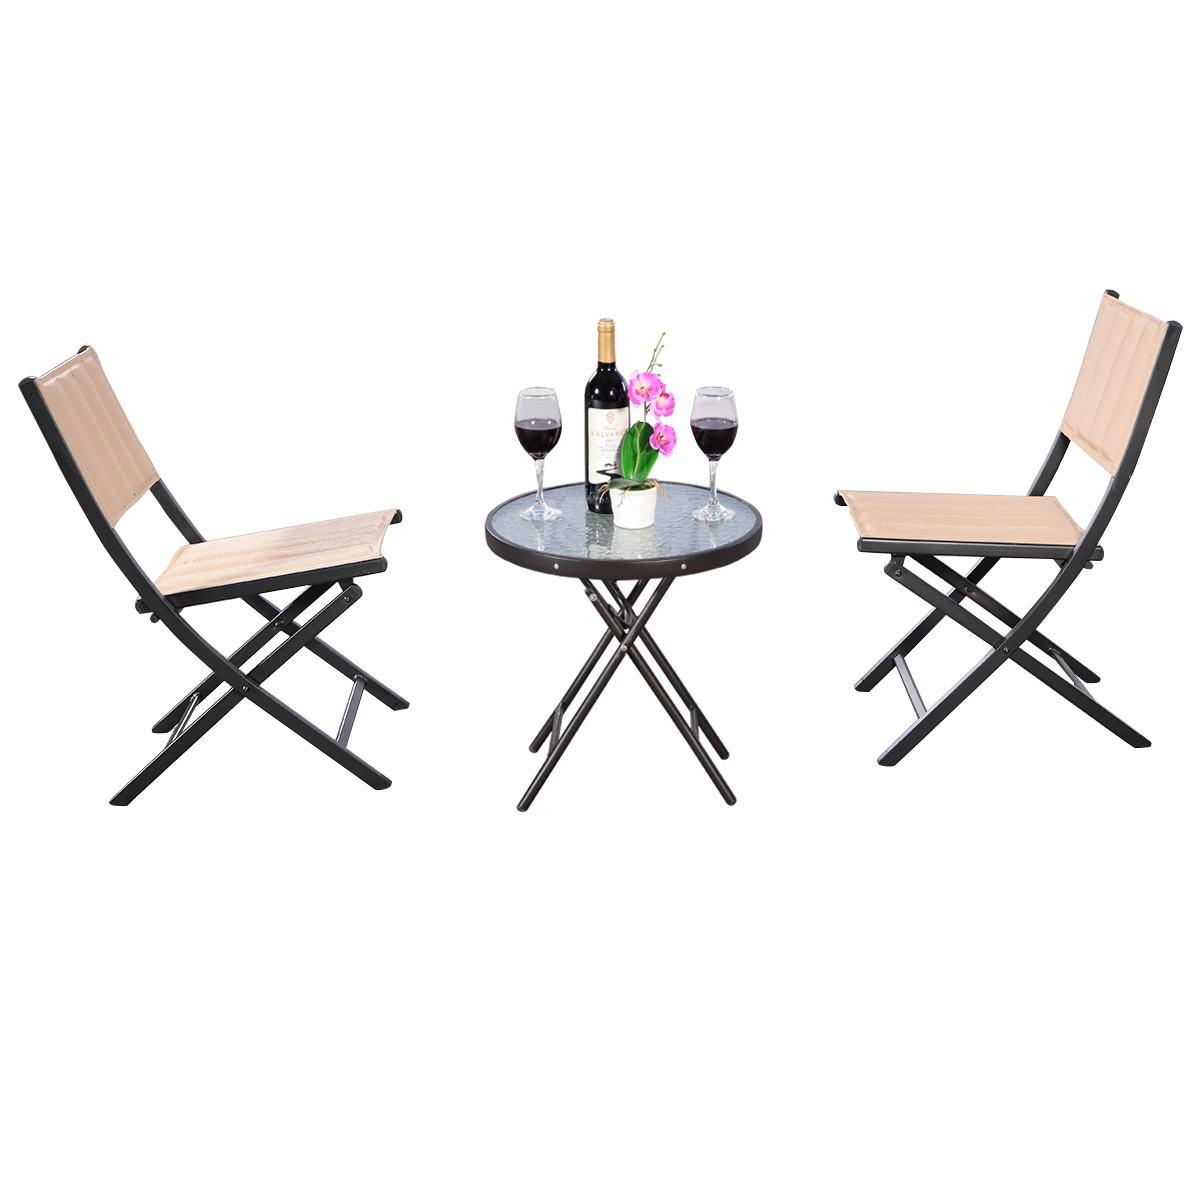 Costway 3PCS Patio Folding Table Chairs Furniture Set Bistro Garden Steel